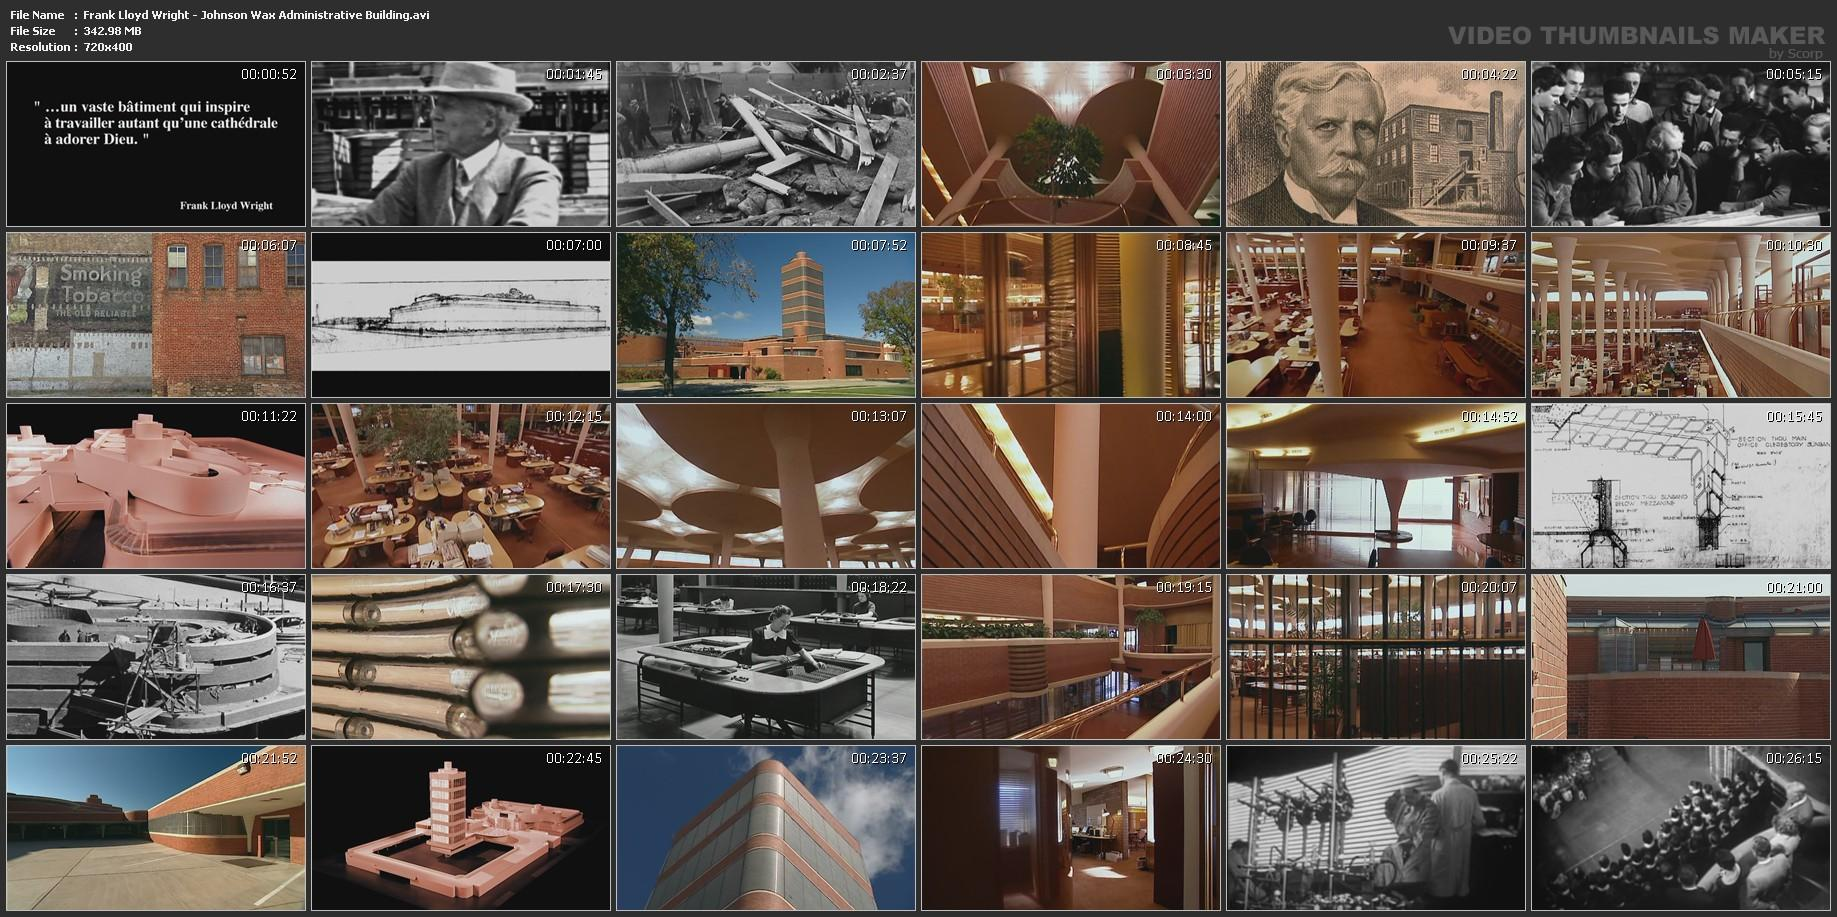 http://d20.ir/14/Images/367/Large/Frank_Lloyd_Wright_-_Johnson_Wax_Administrative_Building.avi.jpg